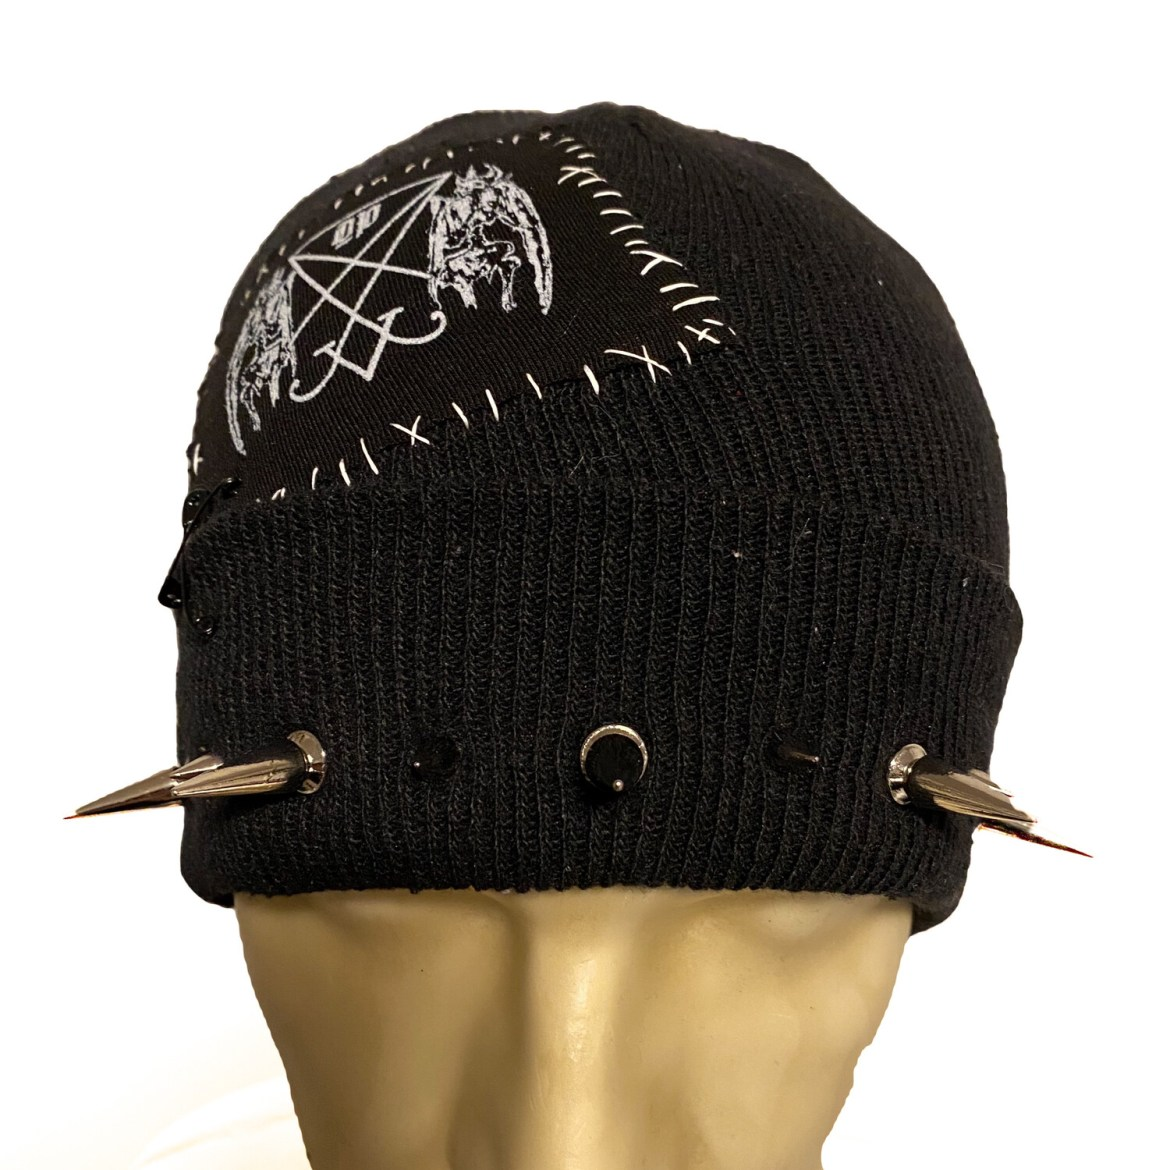 DIY or D*E Strength Through Knowledge Spiky Beanie